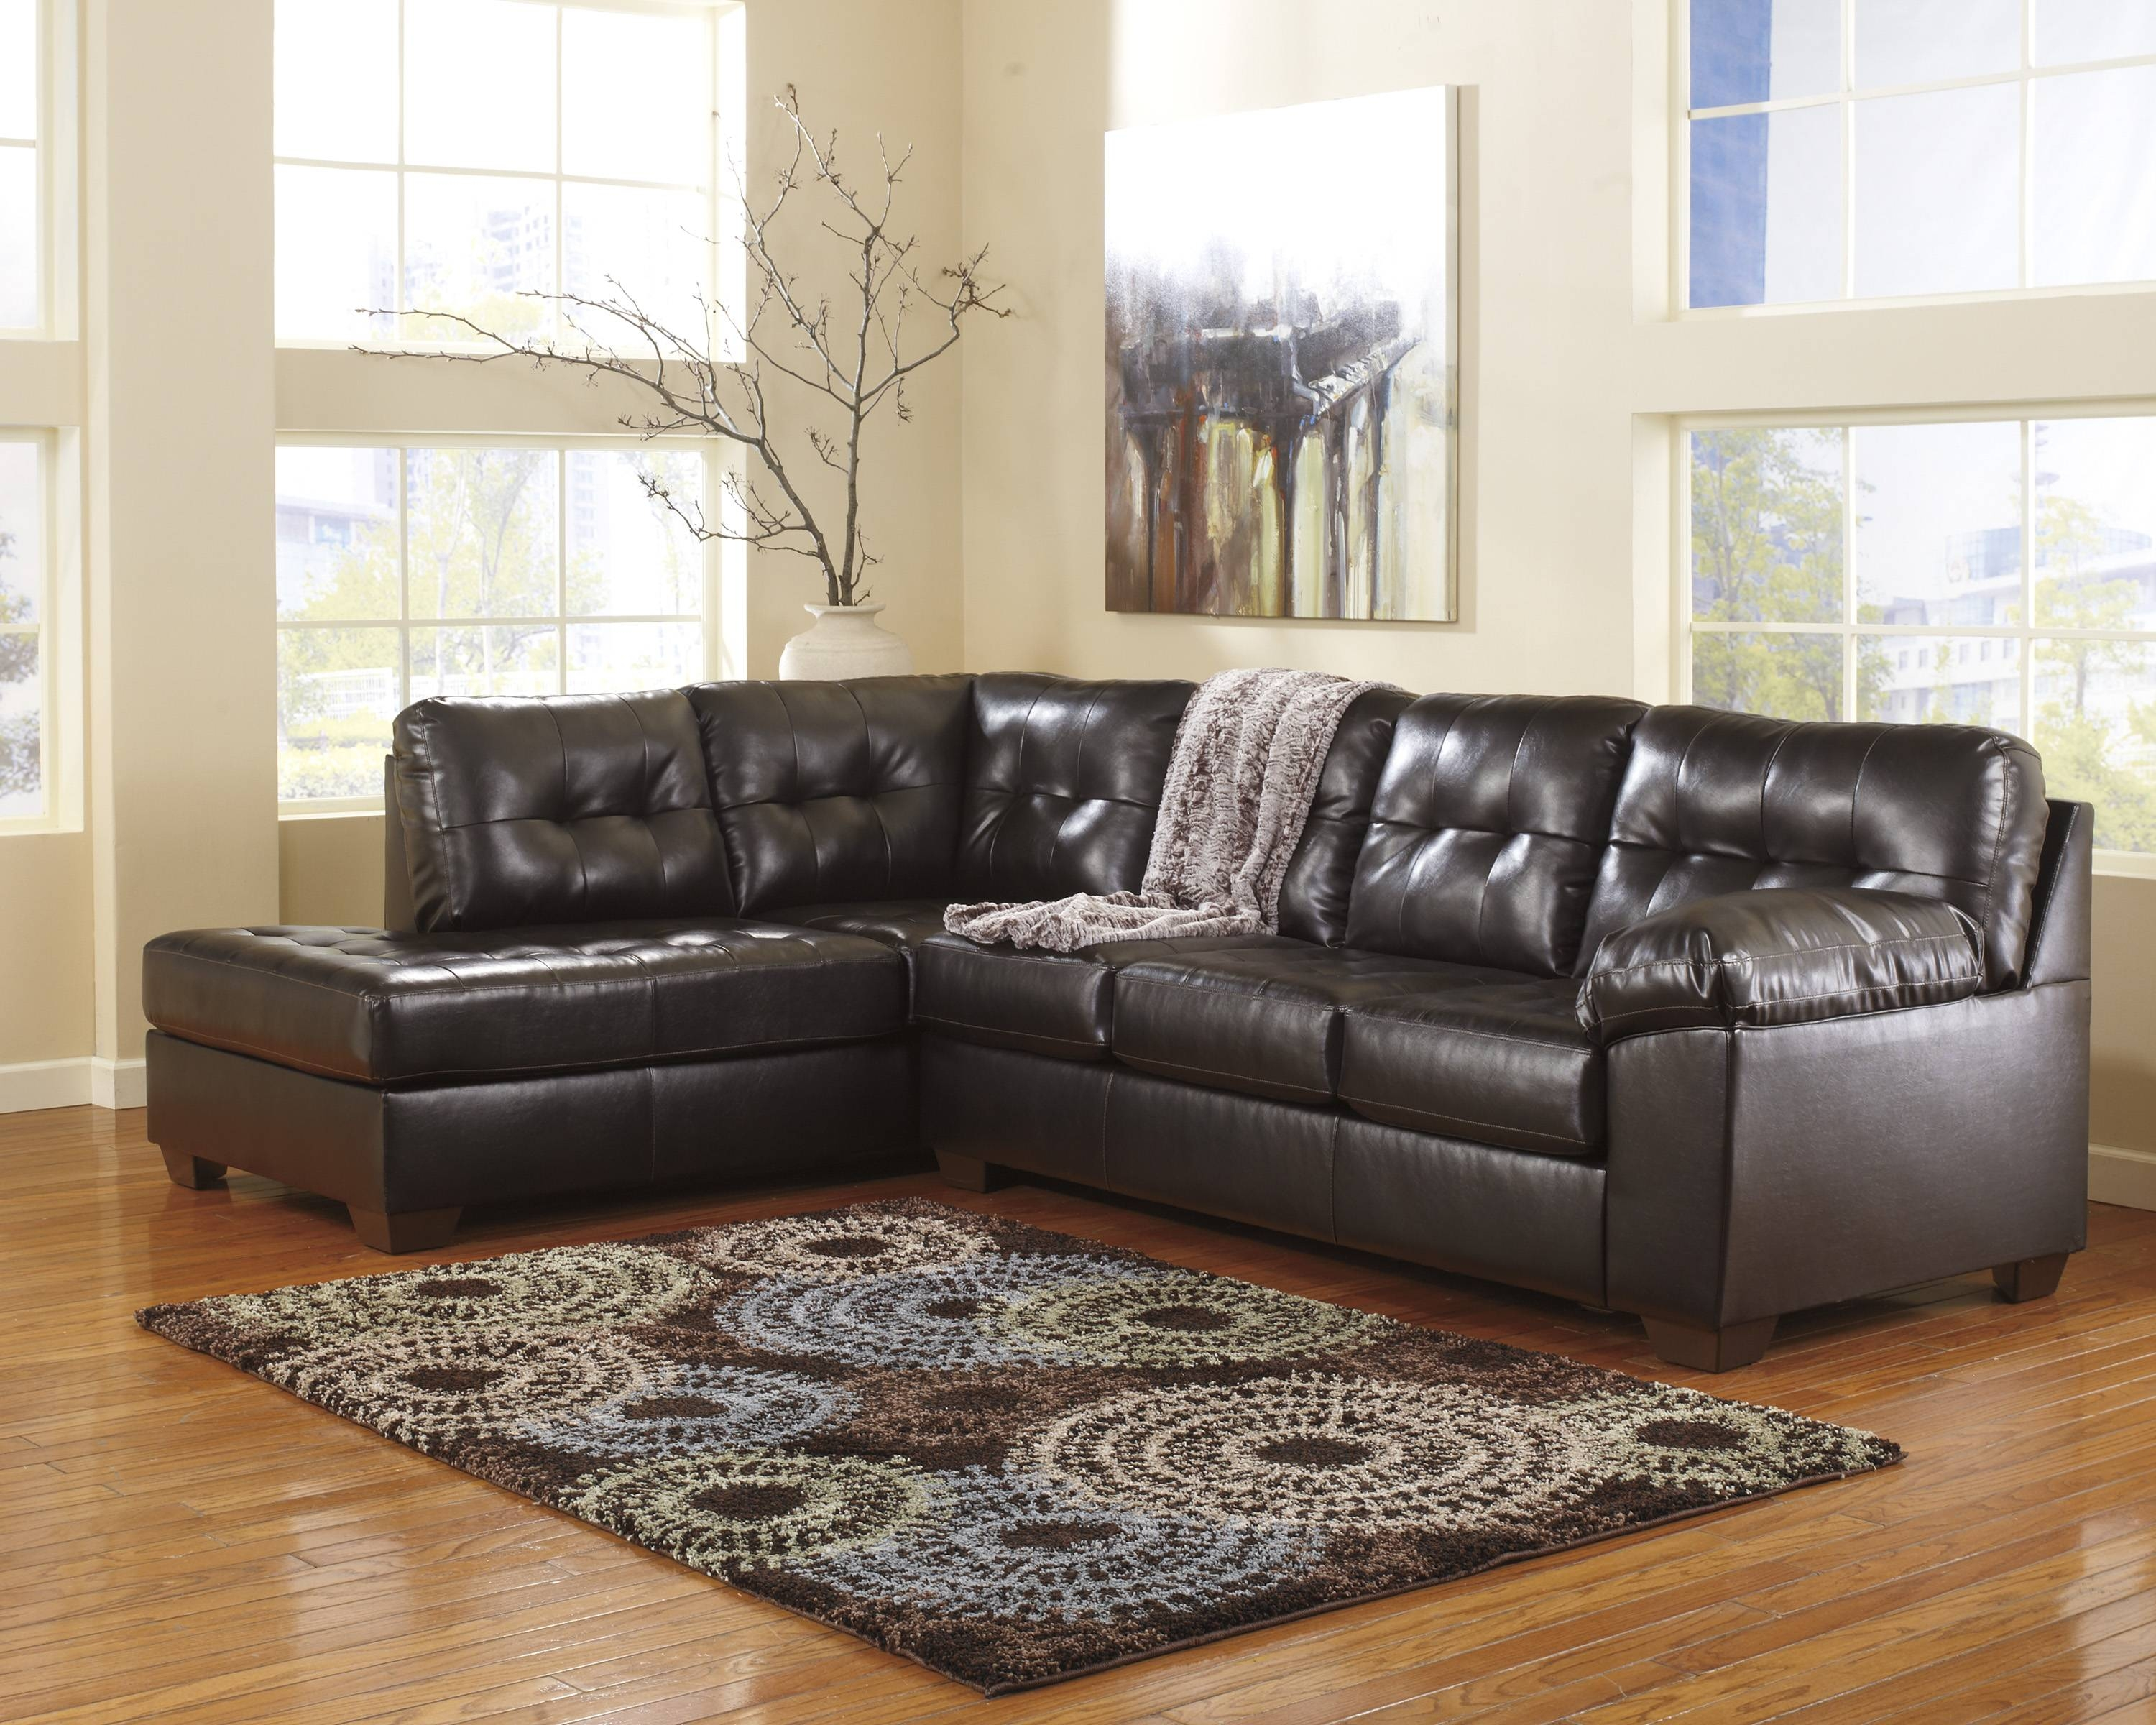 Ideas: Undecent Best Ashley Sectional With Cheap Price For Living regarding Ashley Furniture Brown Corduroy Sectional Sofas (Image 9 of 15)